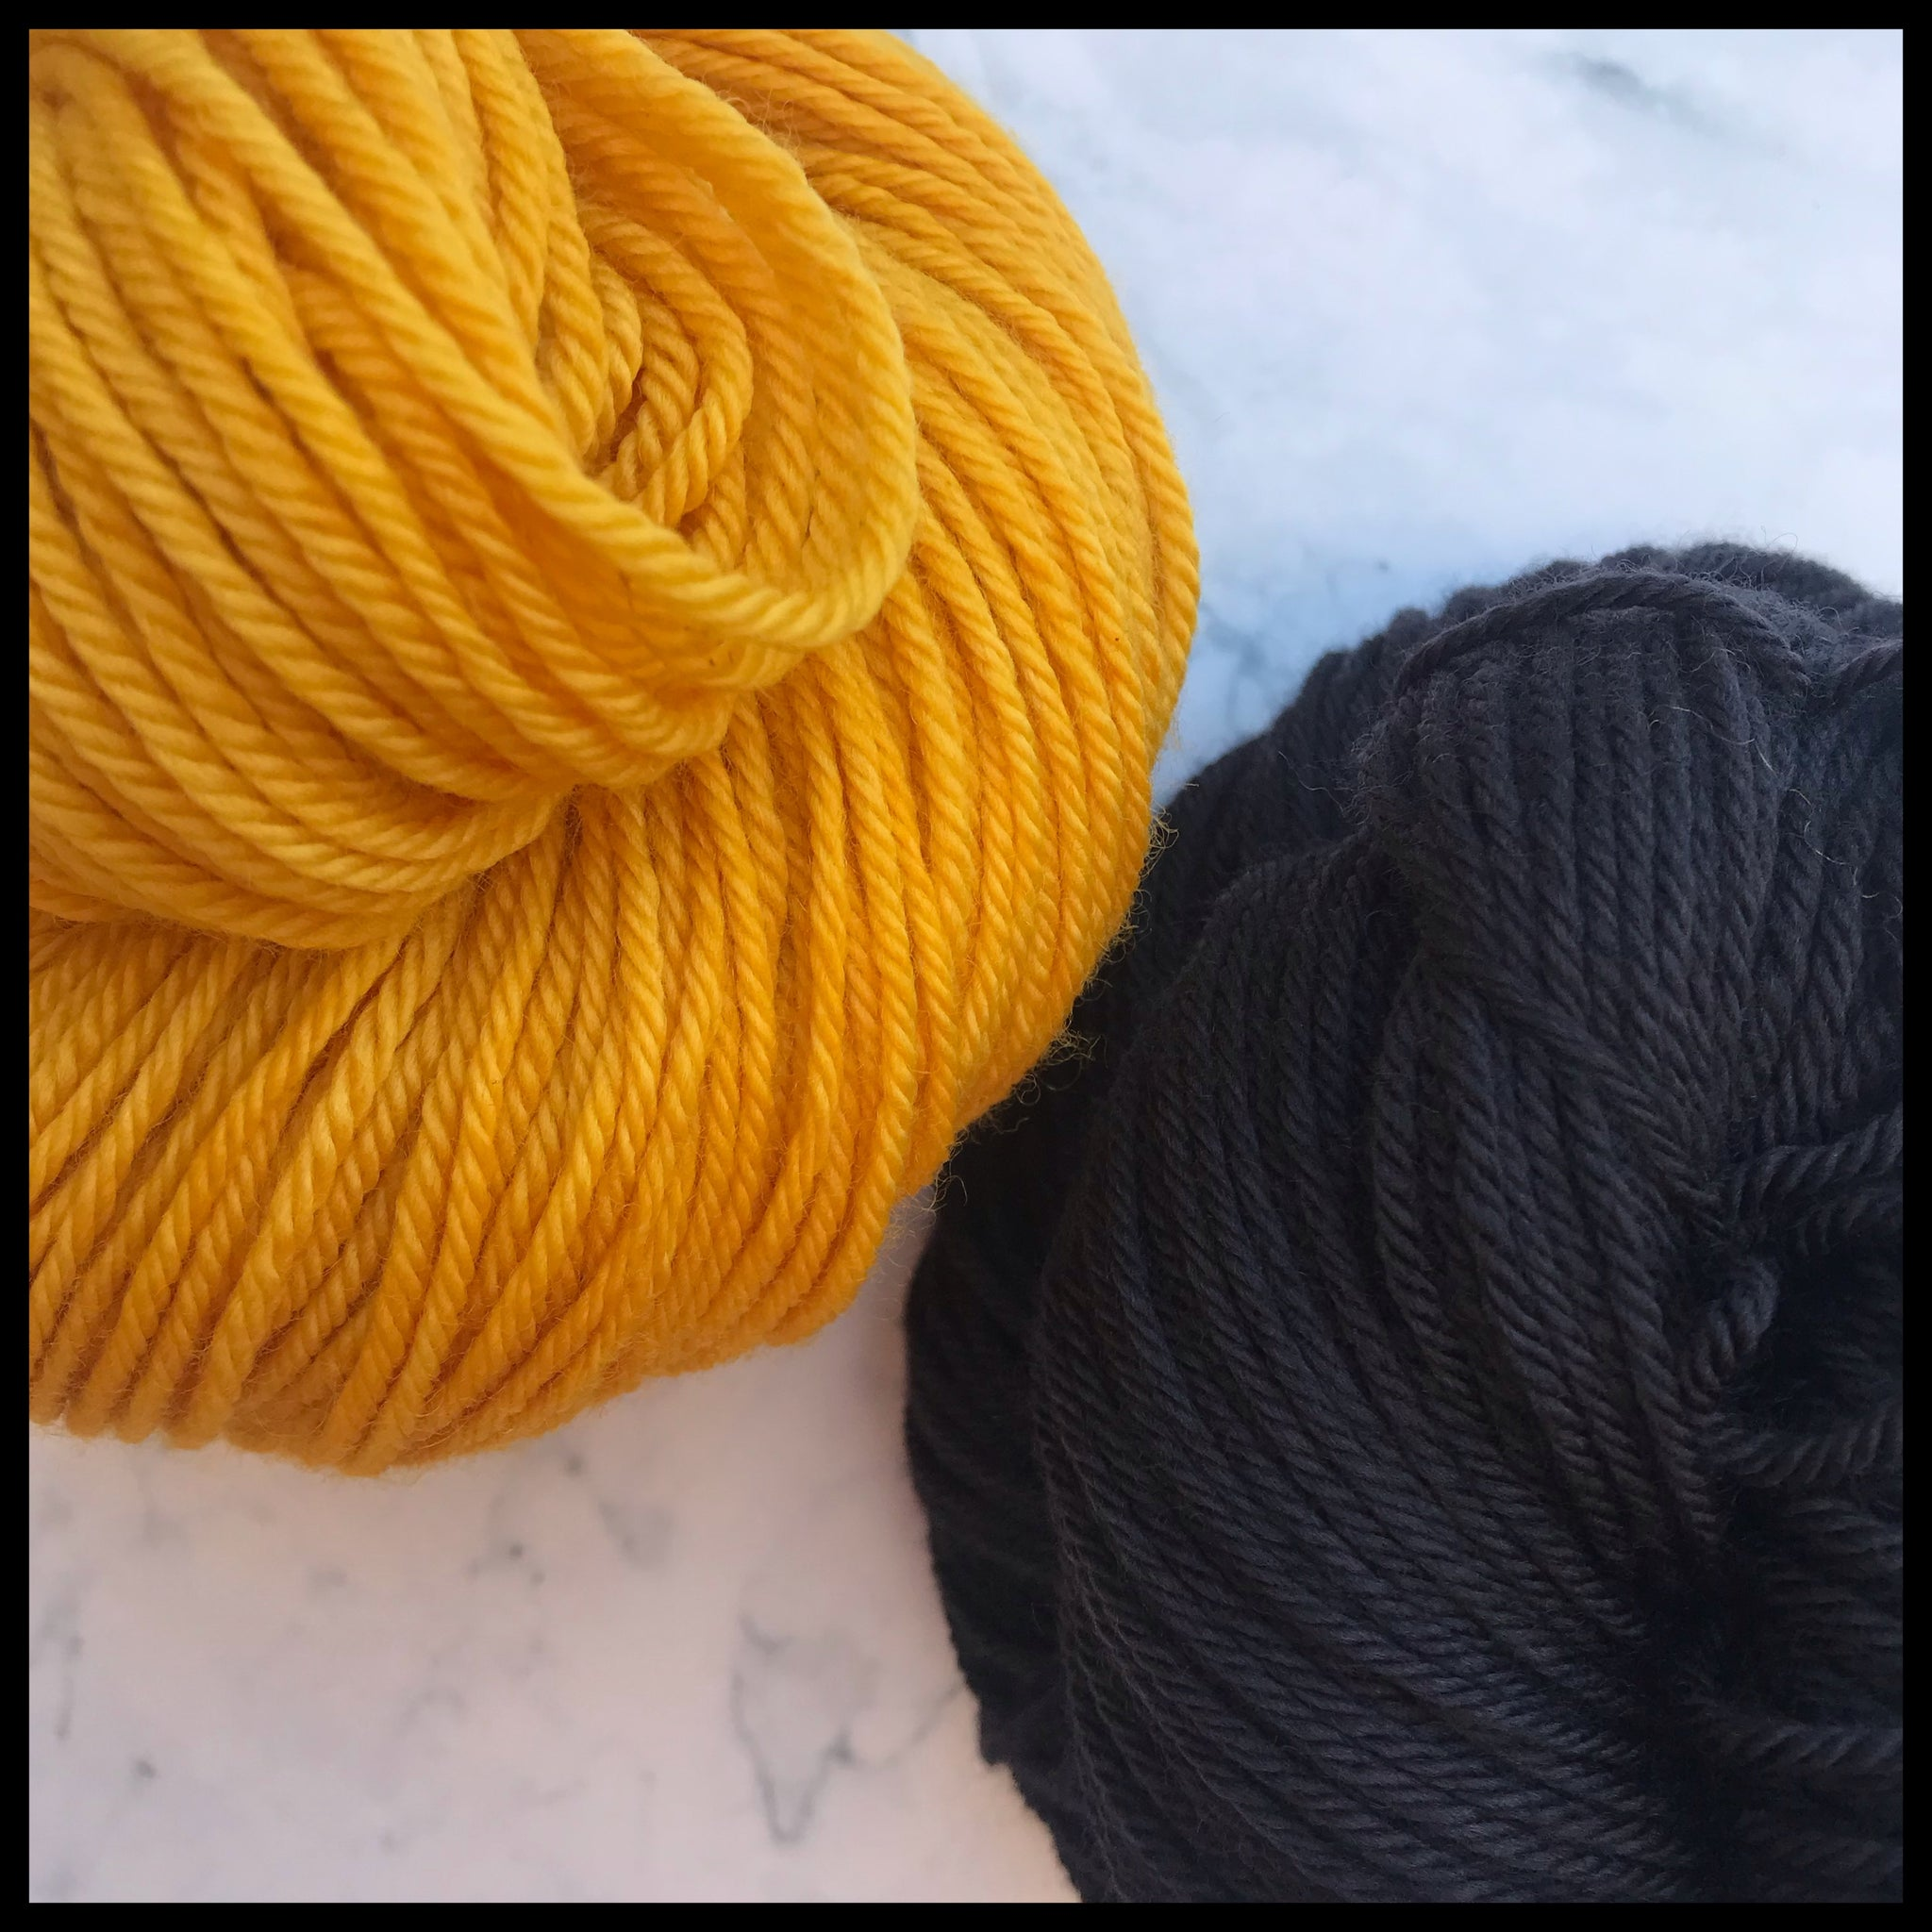 University of Central Florida black and gold UCF college-themed team spirit yarn